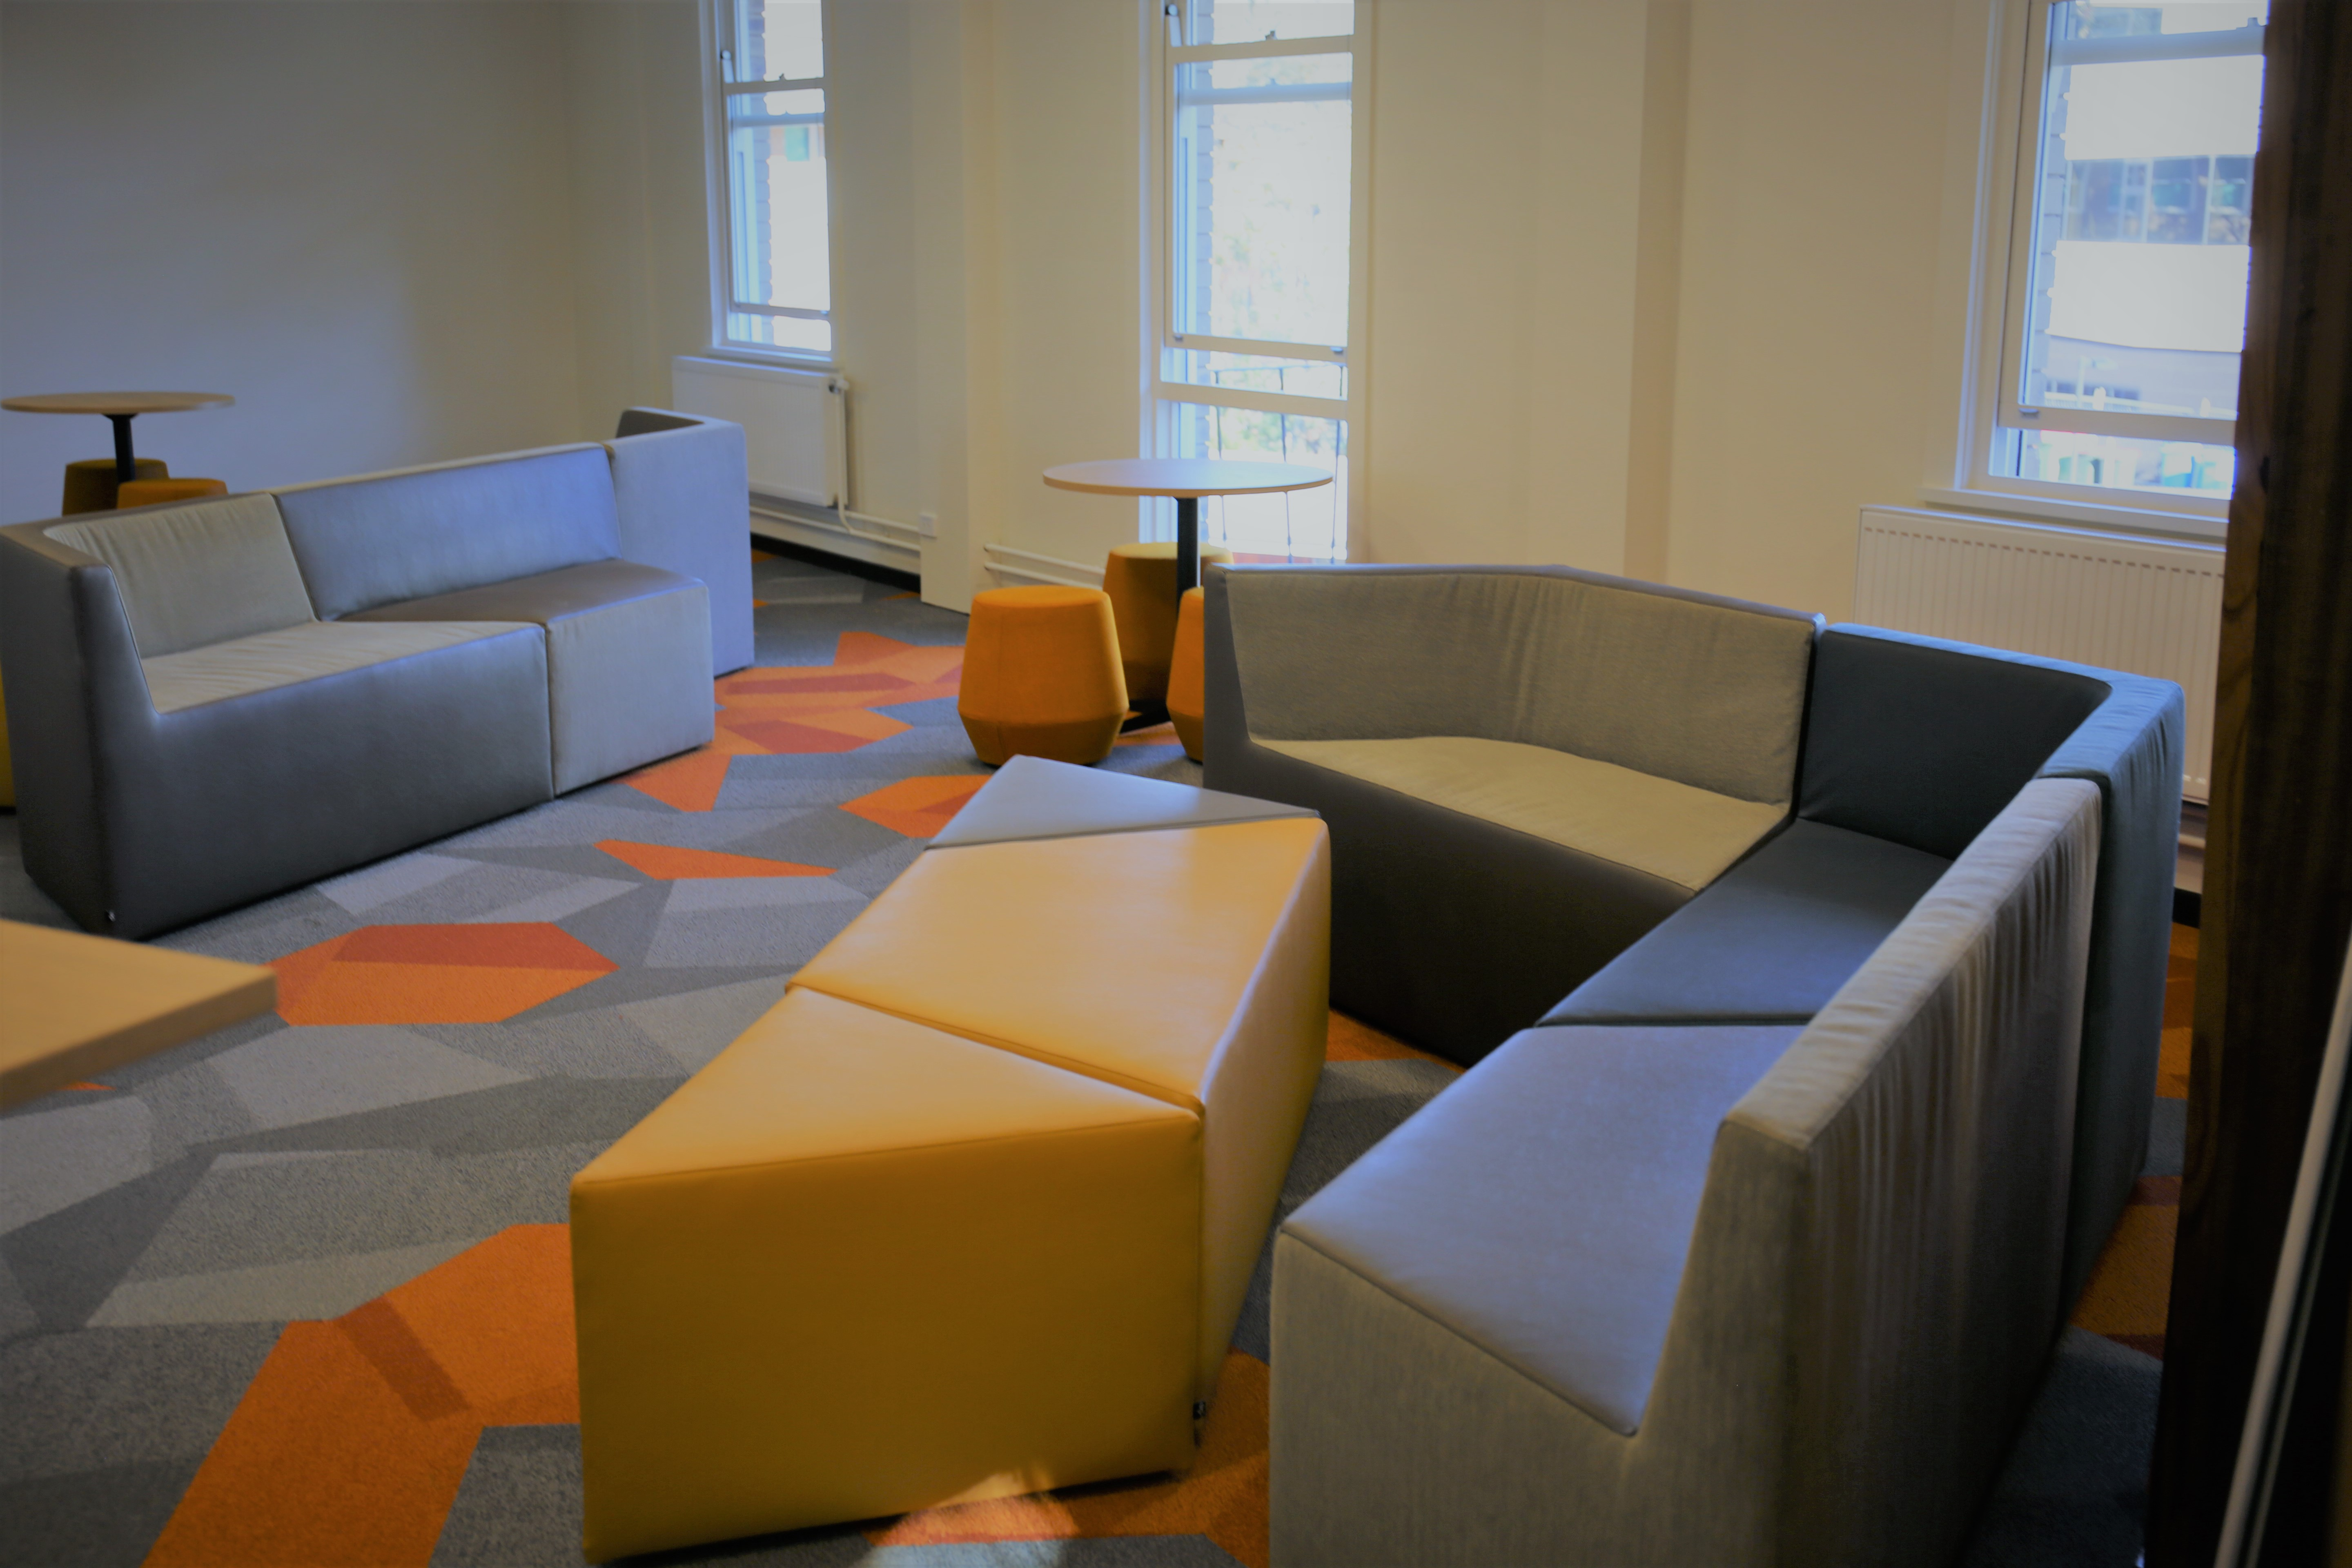 Level 3 communal breakout space - Coombs building